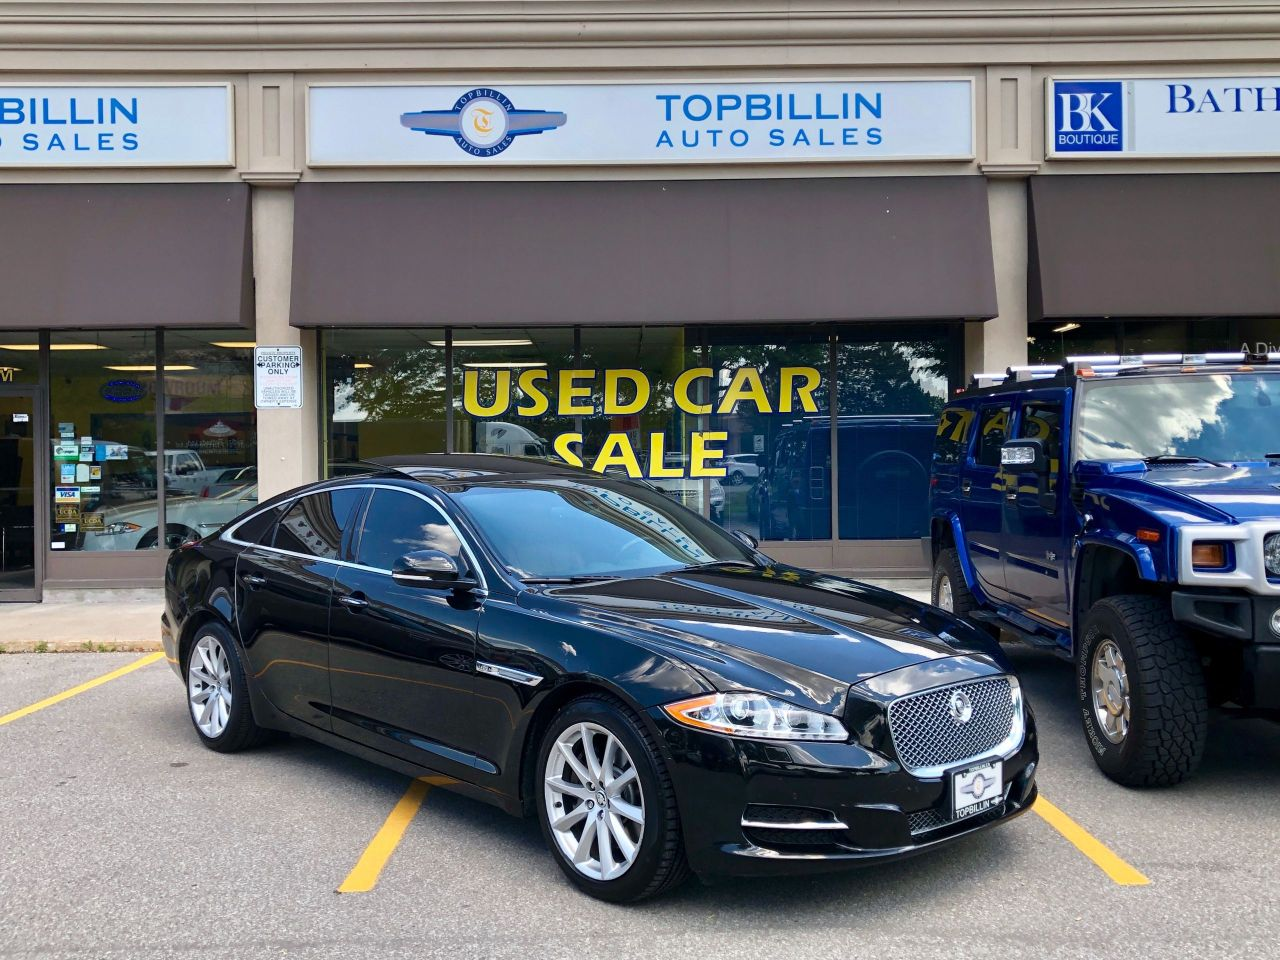 2013 Jaguar XJ Fully Loaded, Clean CarFax